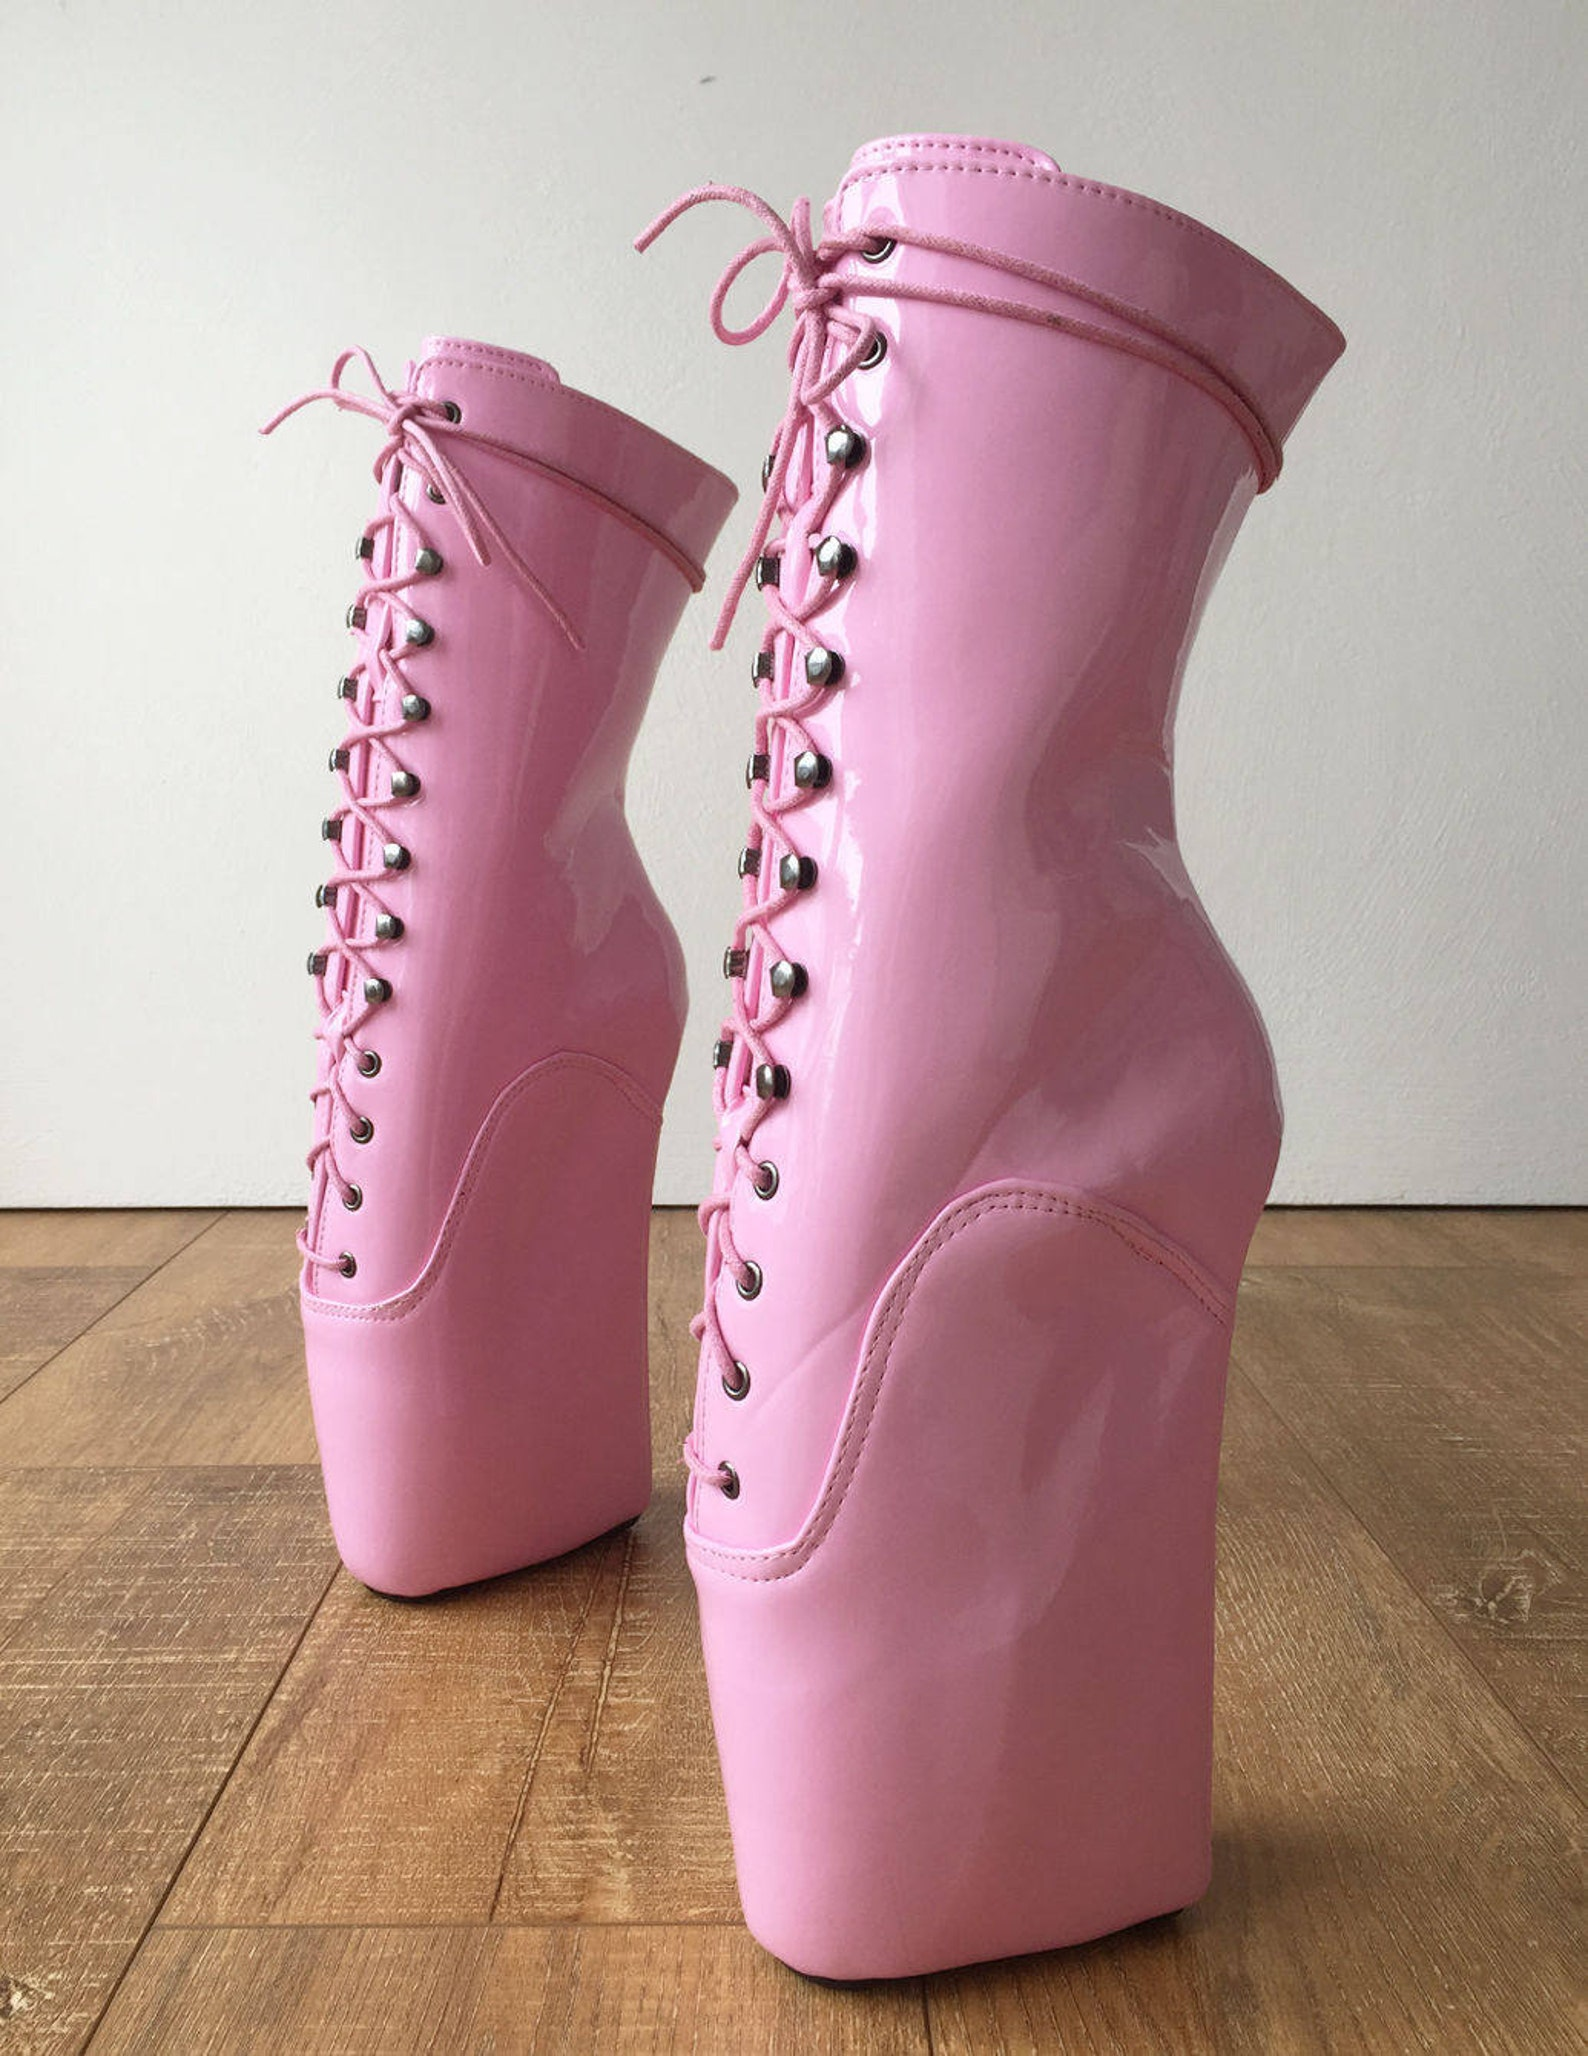 18cm beginner ballet wedge hoof sole heelless fetish pointe baby pink boots